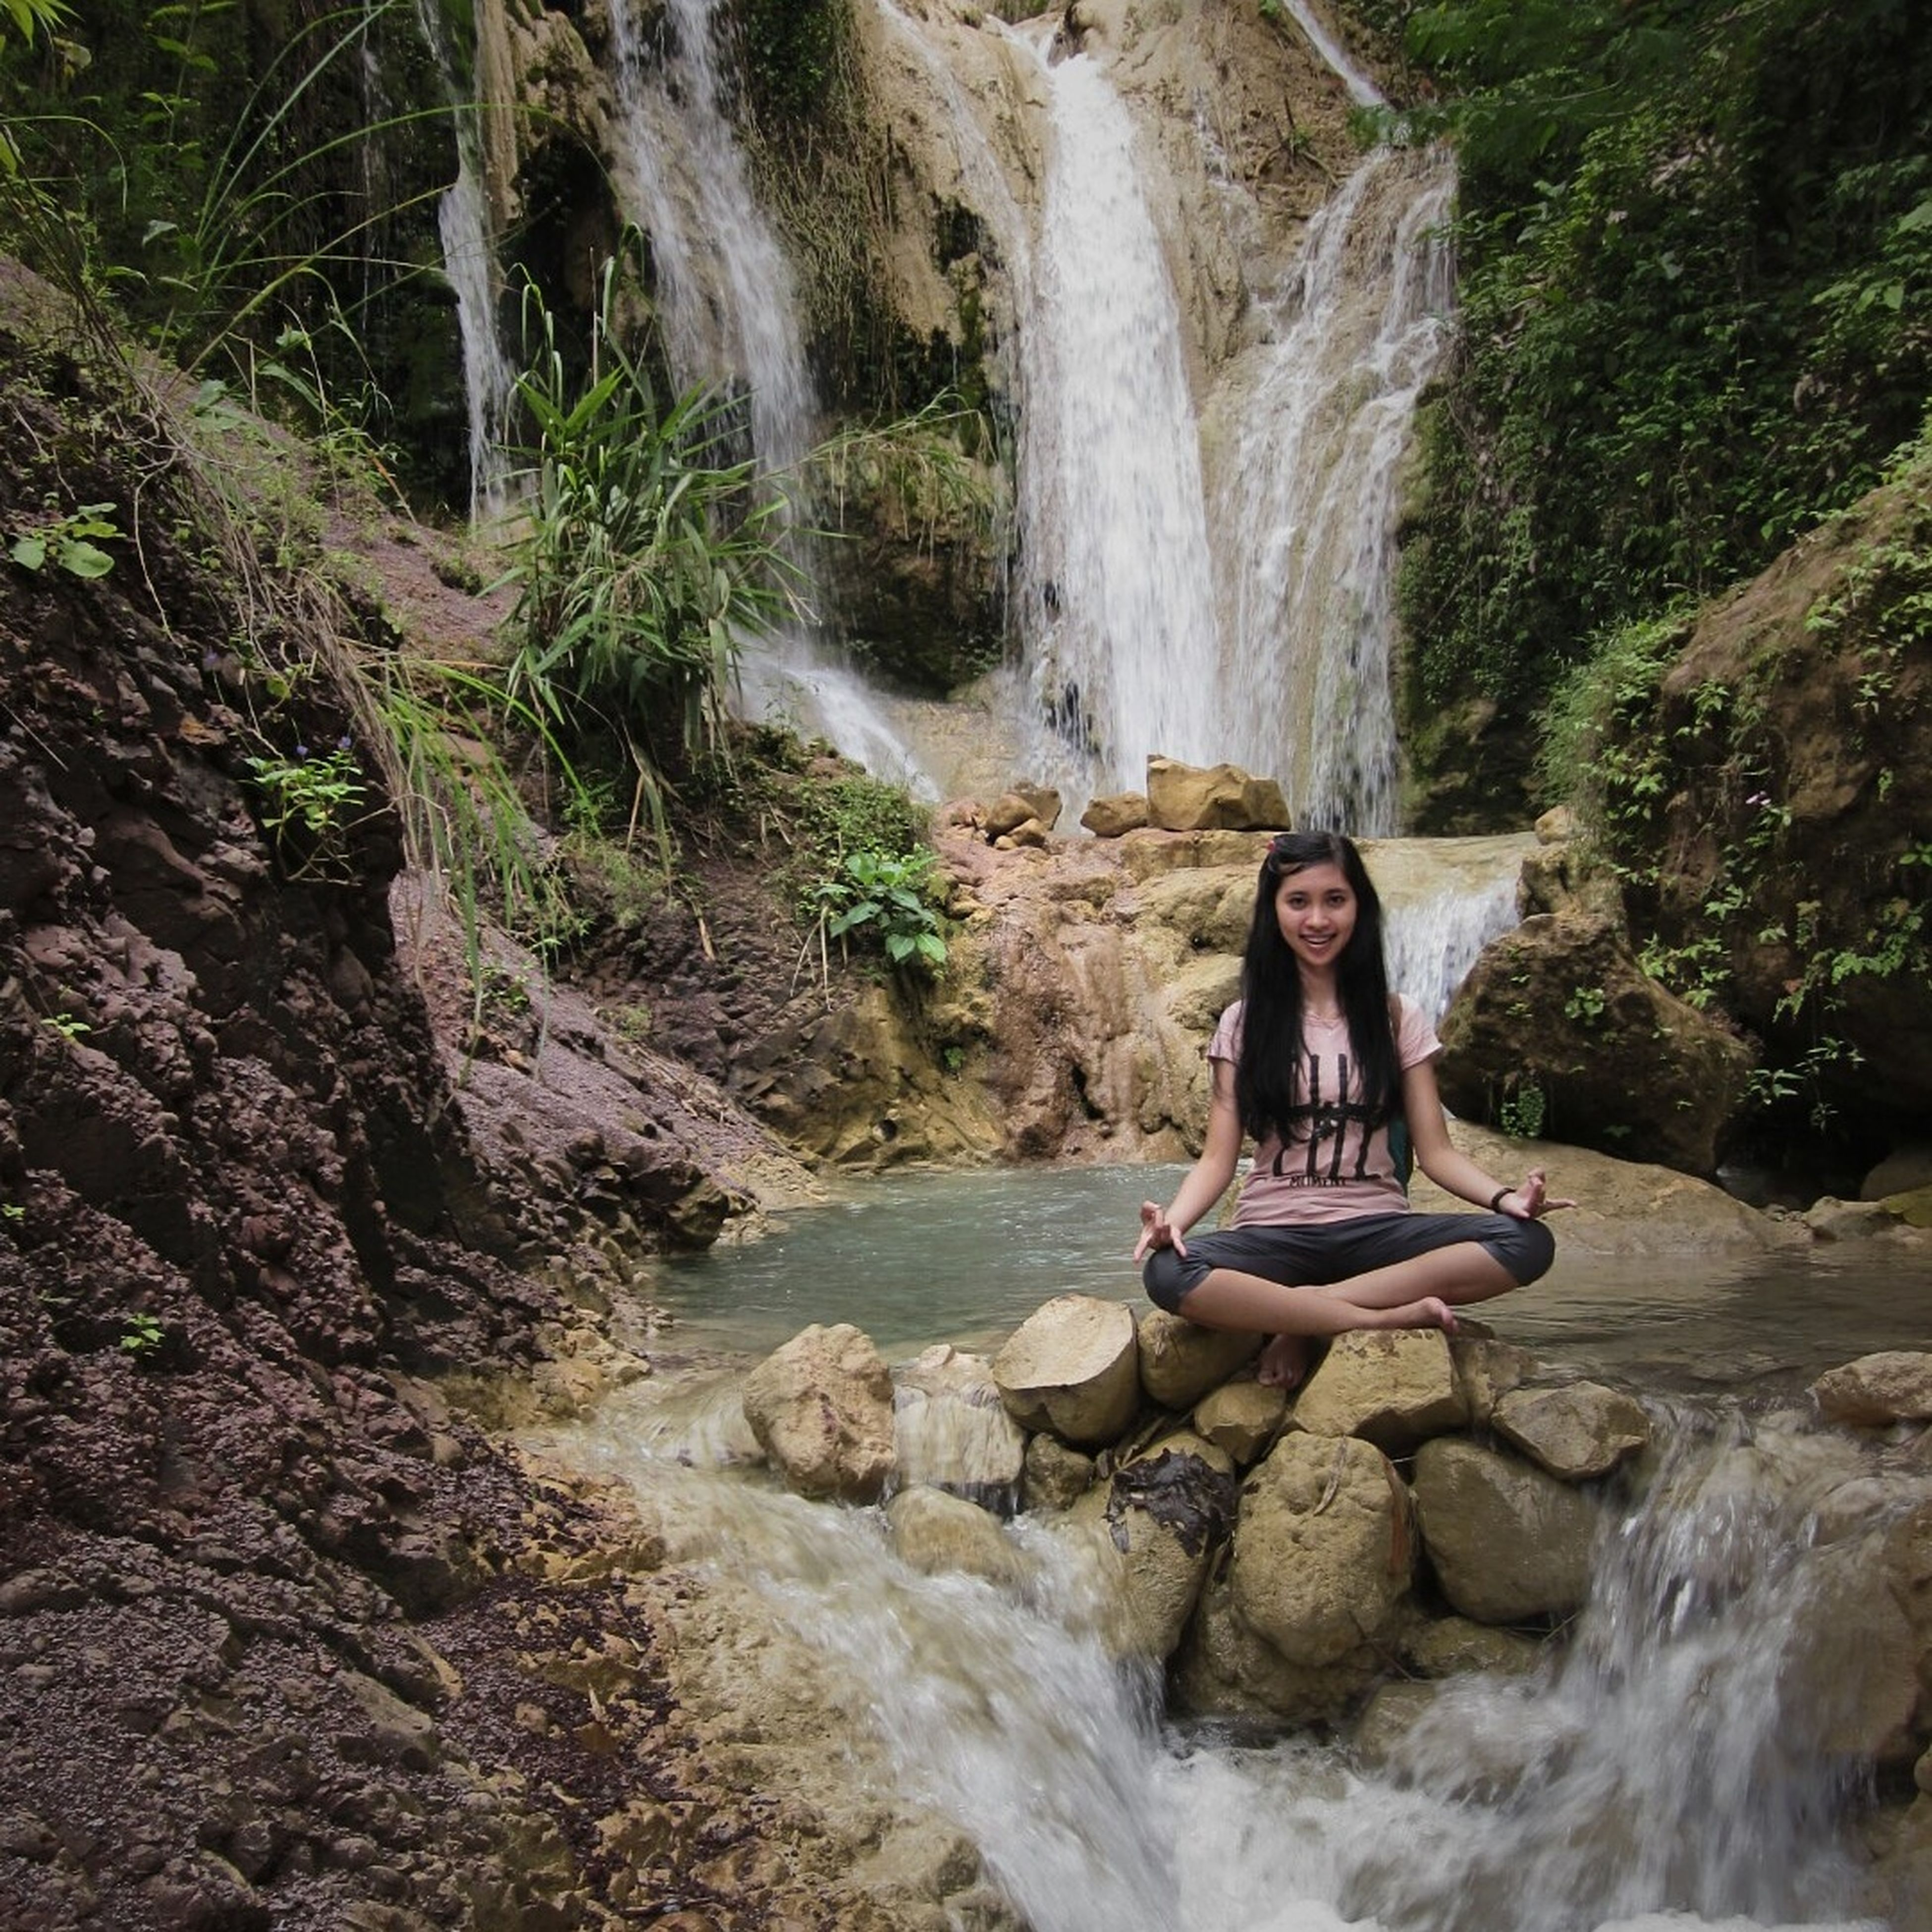 water, lifestyles, leisure activity, rock - object, waterfall, motion, forest, full length, young adult, beauty in nature, nature, vacations, flowing water, tree, scenics, rock, long exposure, rock formation